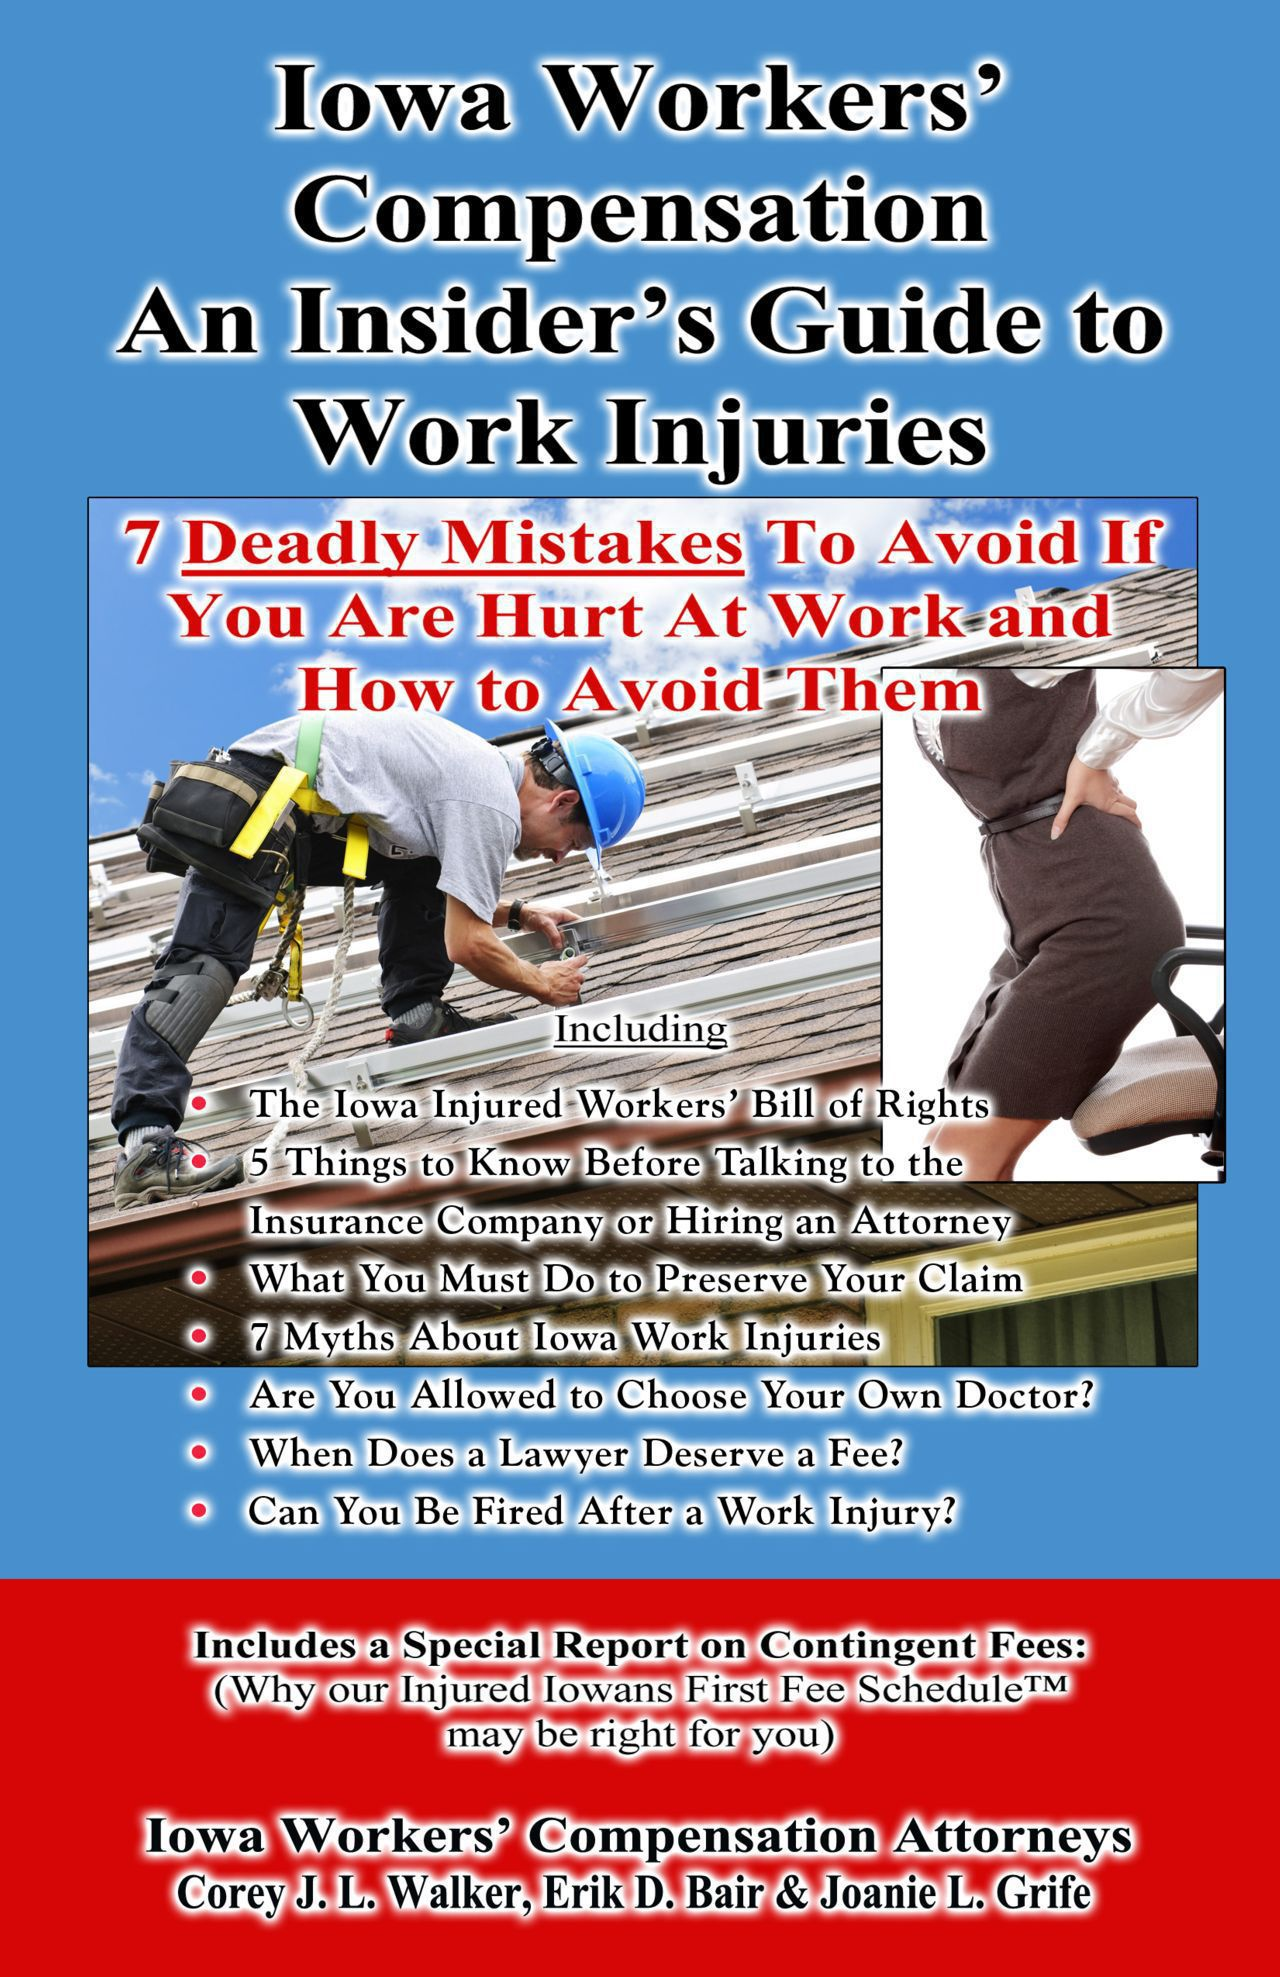 Iowa workers compensation and insider's guide to work injuries book